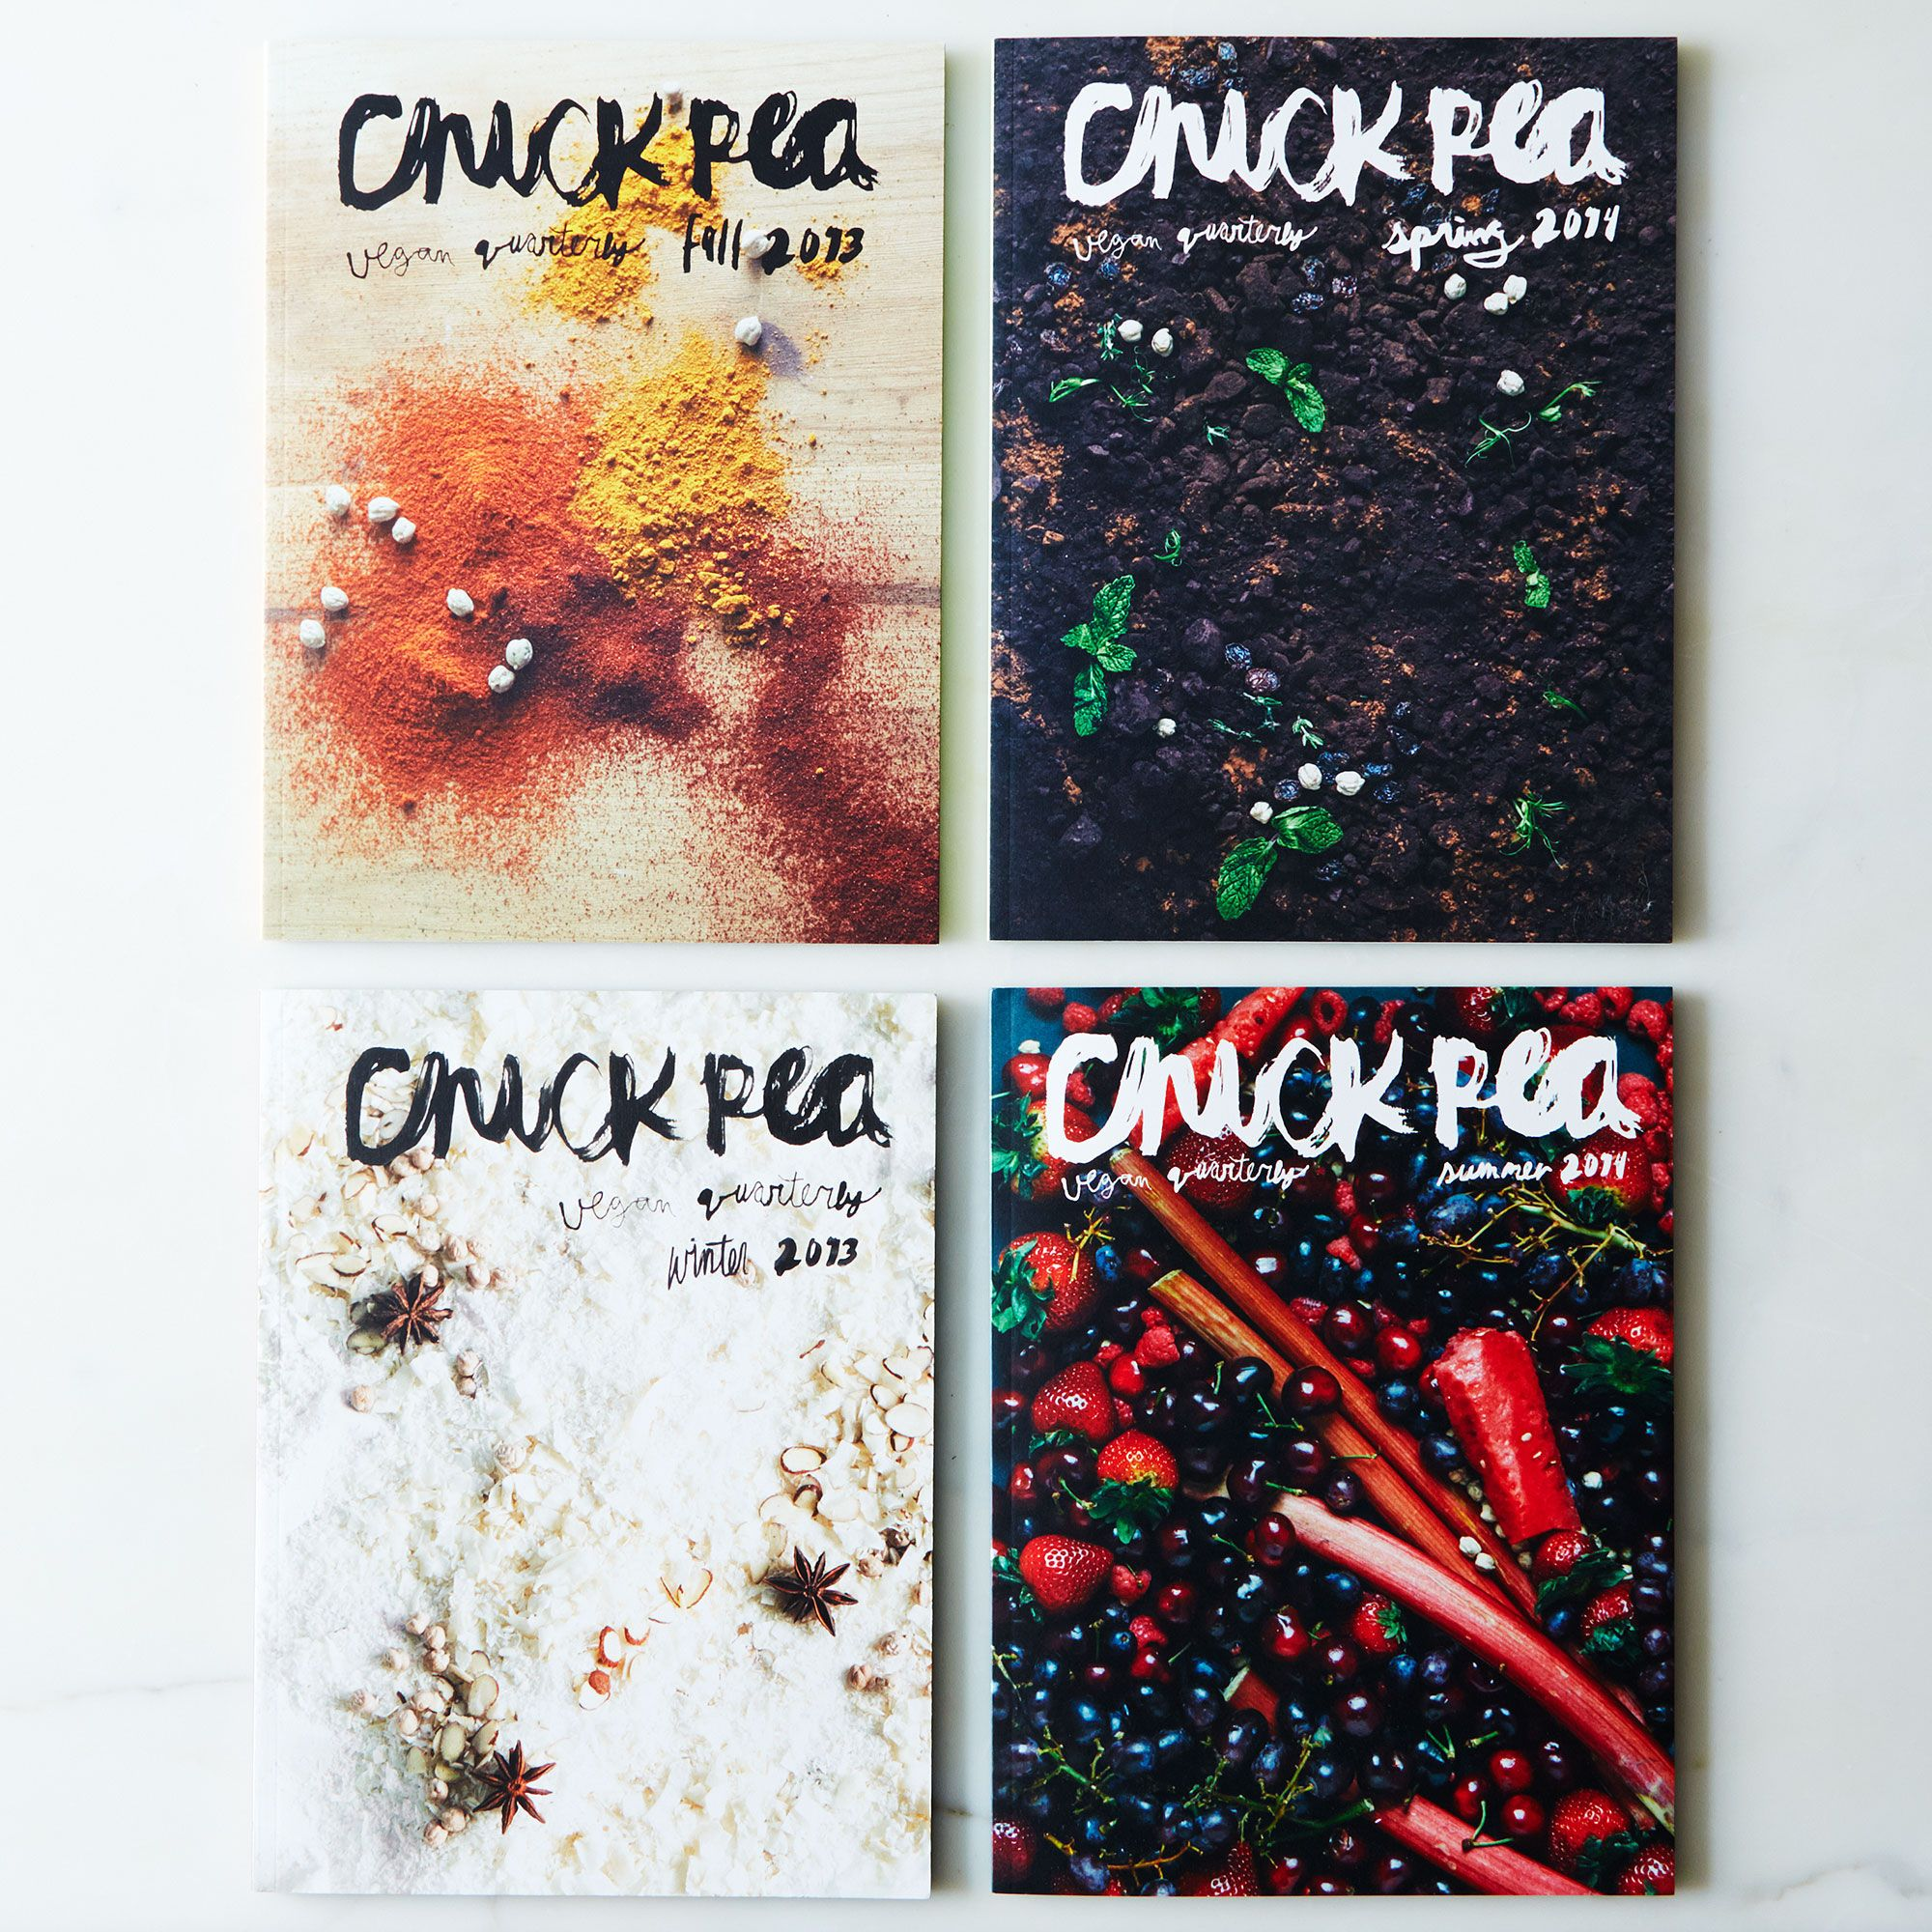 660ac381 262f 4e11 9a1f 5e2ec2733a0e  2014 0723 chickpea annual subscription 015